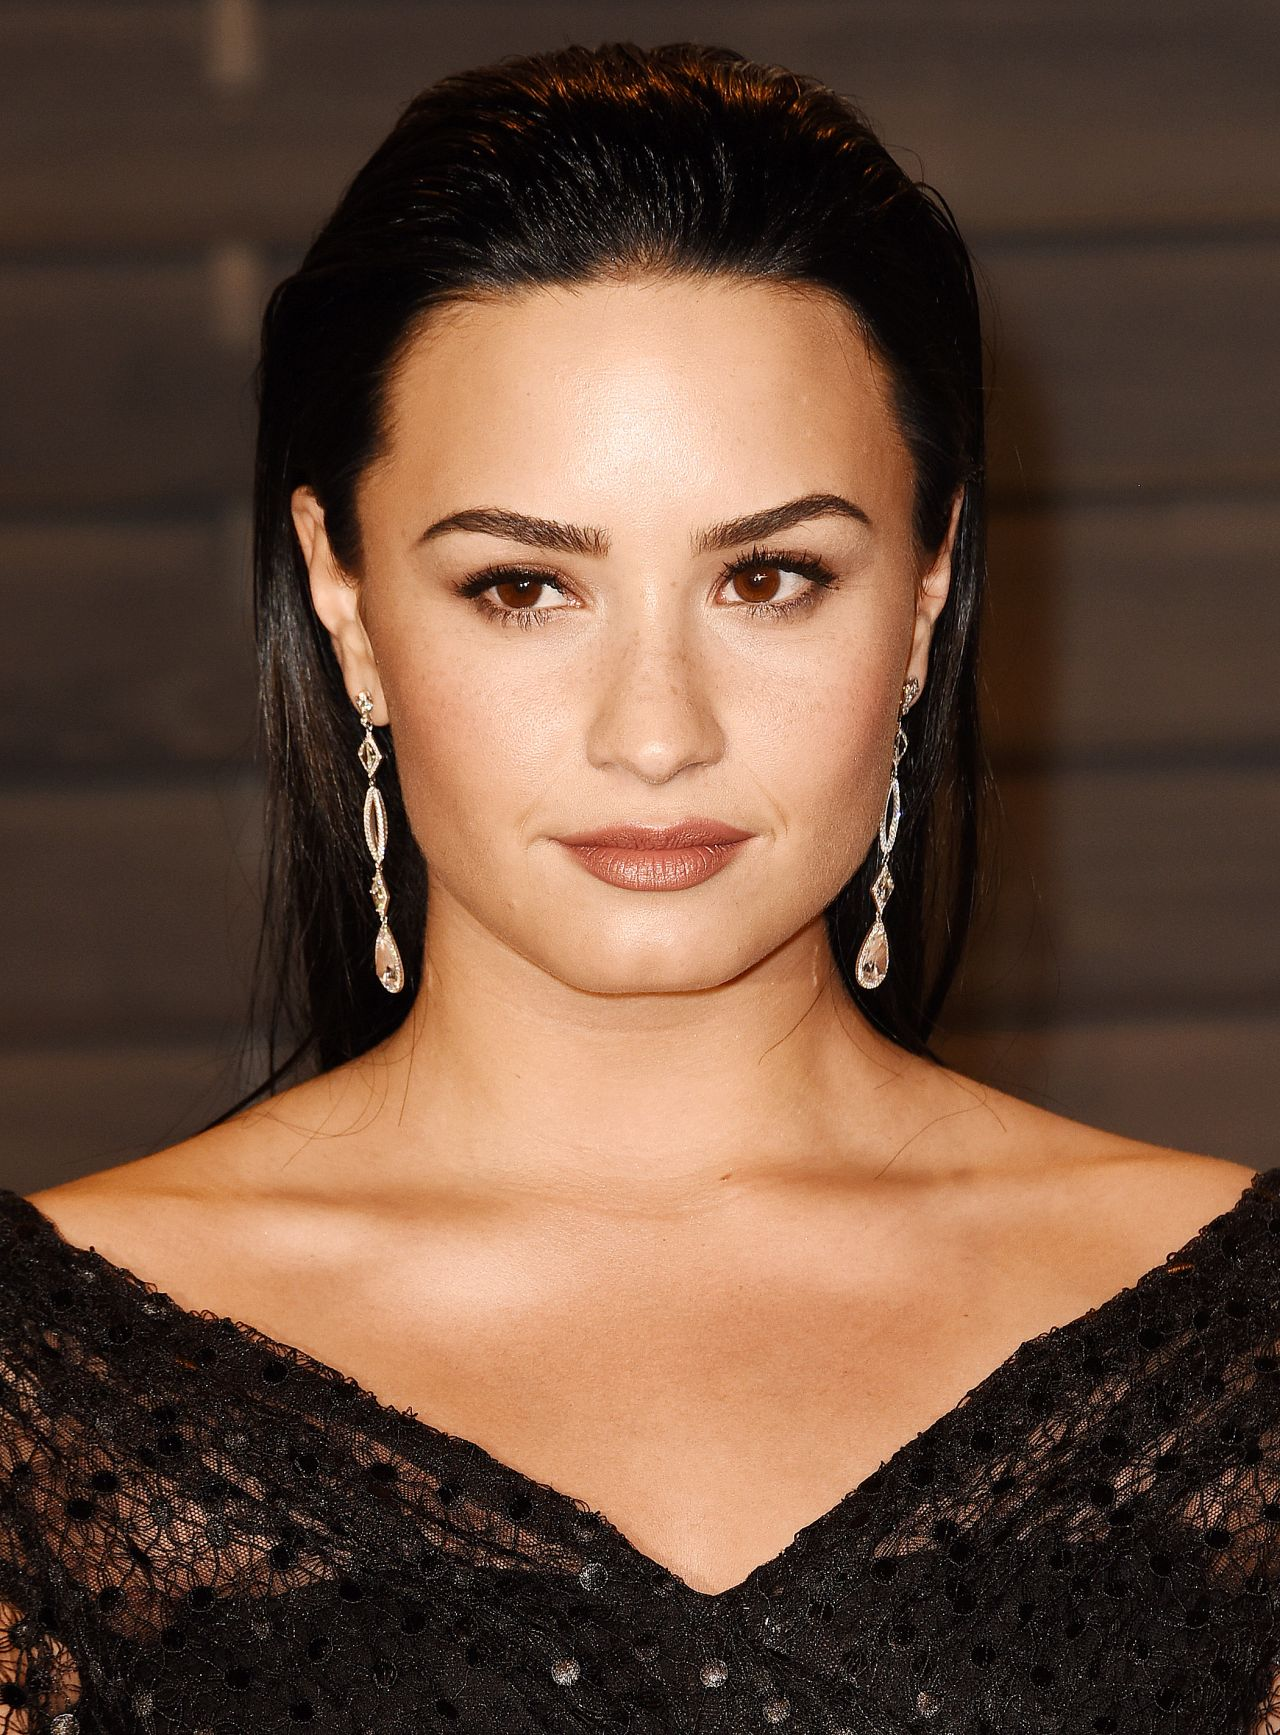 demi lovato - photo #10